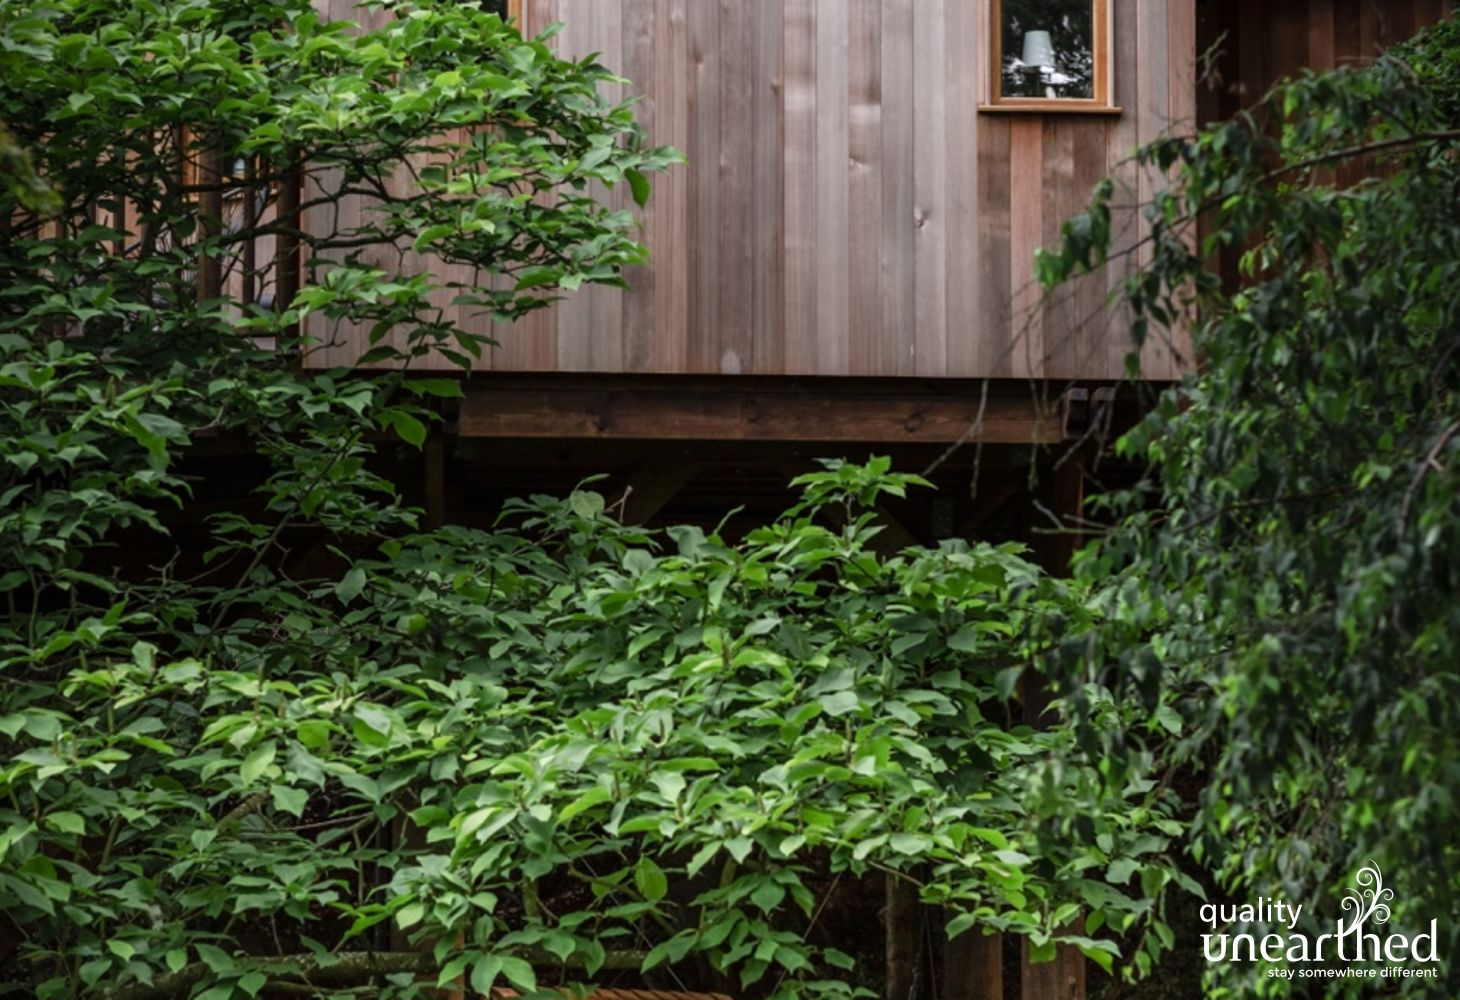 The cedar of the treehouse adds a contemporary look to its classic design